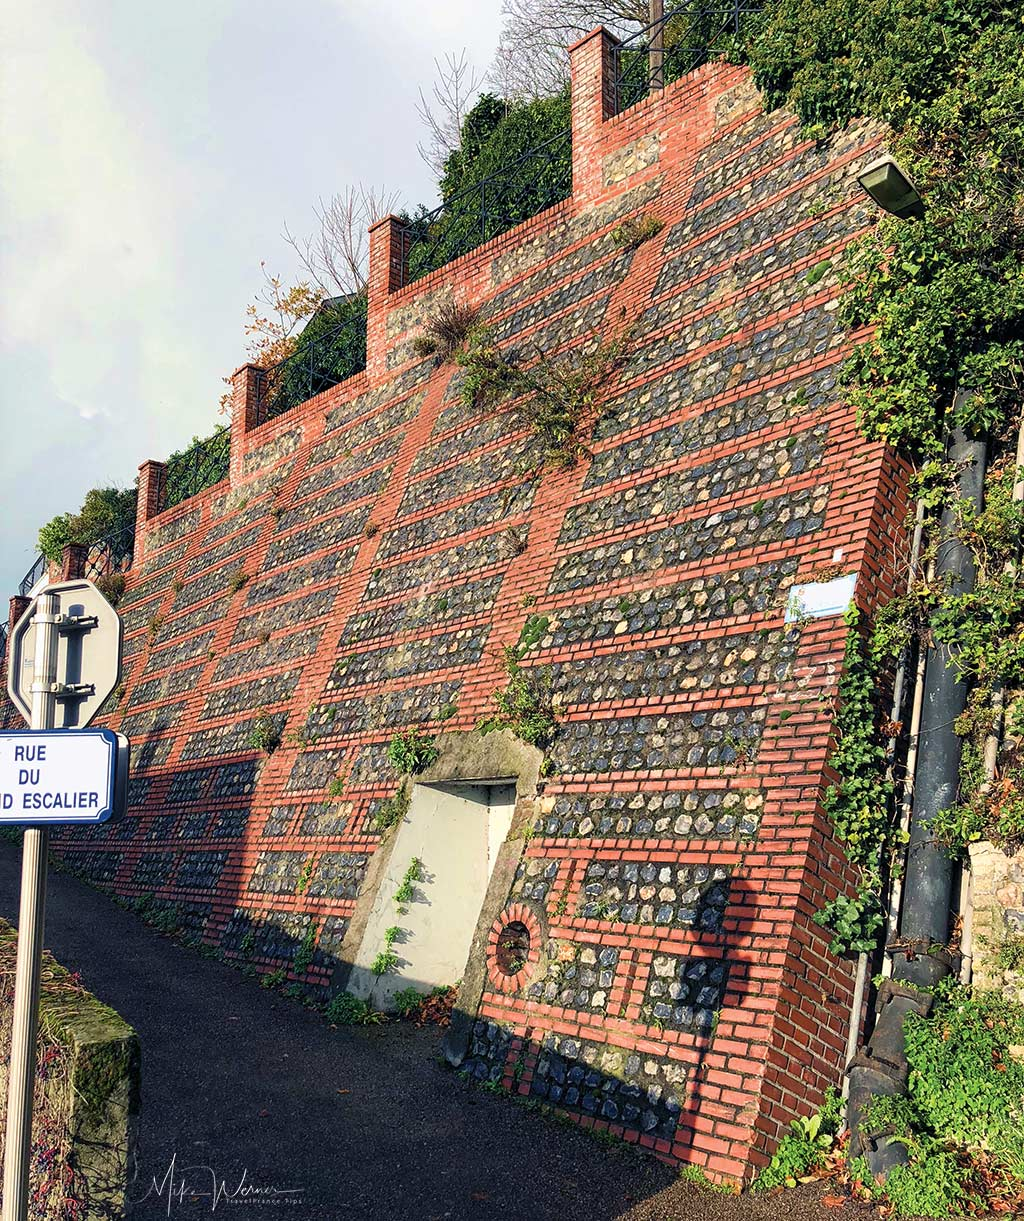 """Part of the wall of the """"Rue du Grand Escalier"""" in Le Havre, Normandy"""